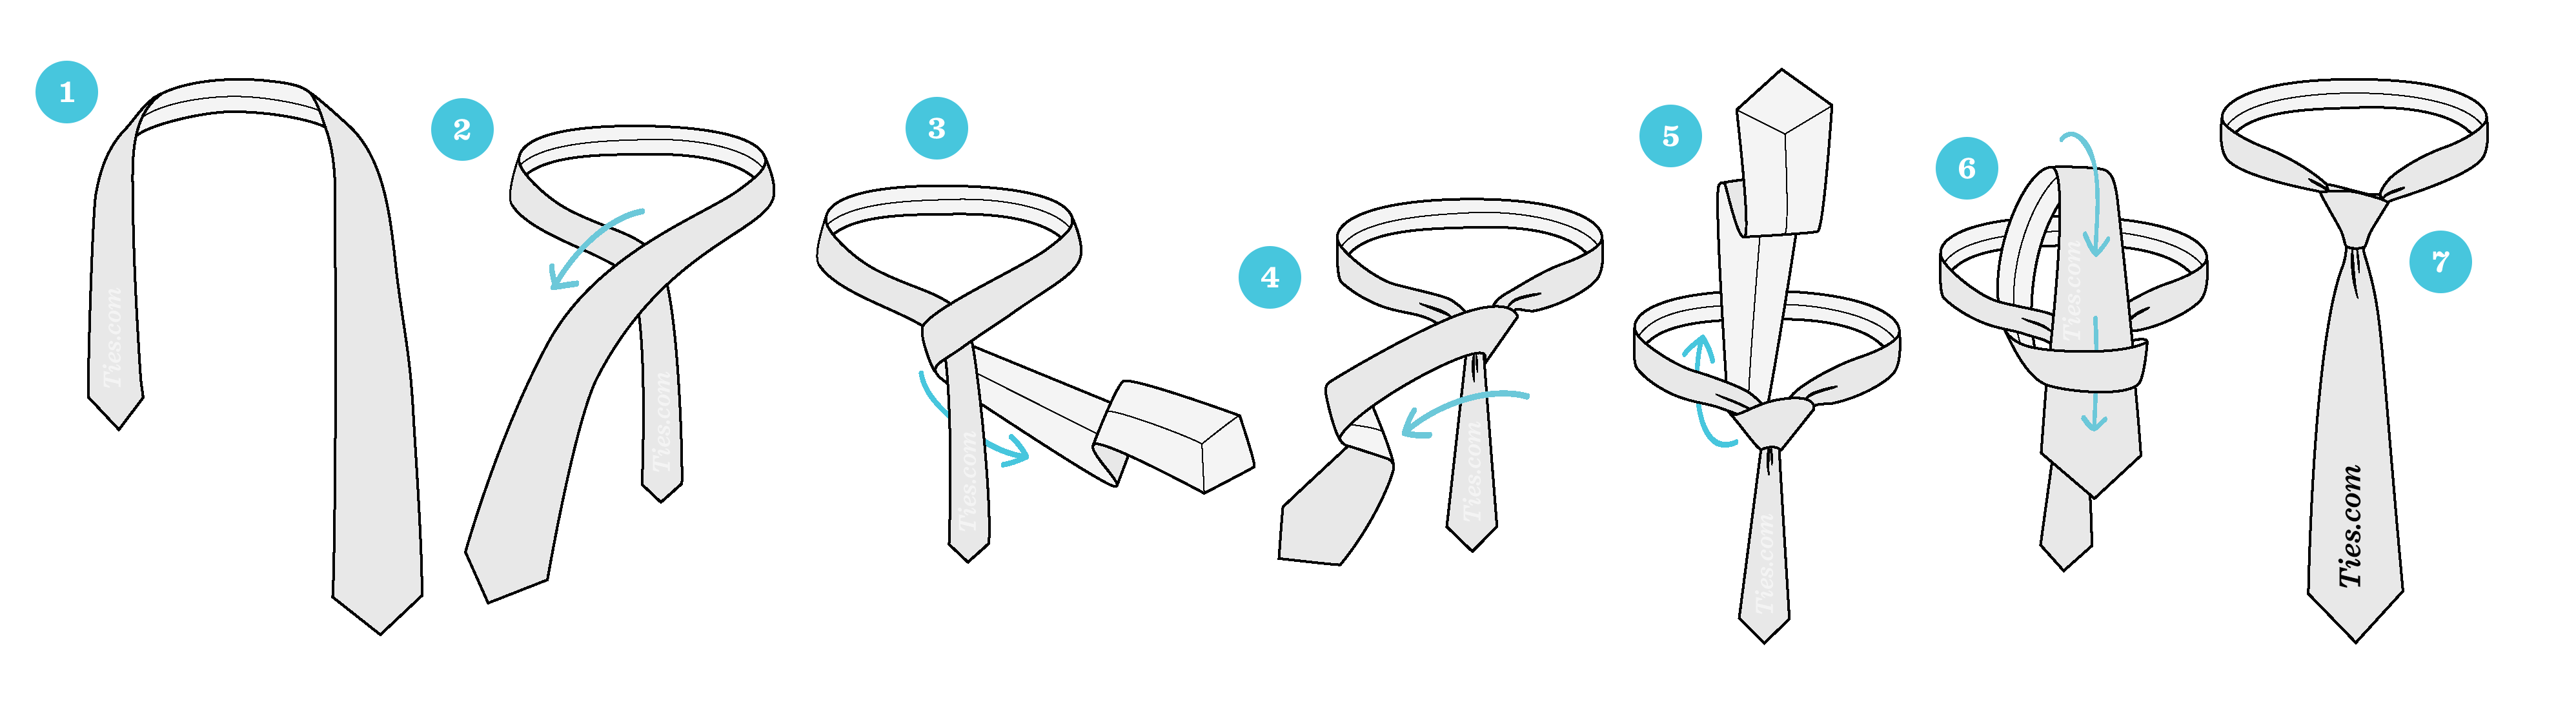 four-in-hand graphic from ties.com